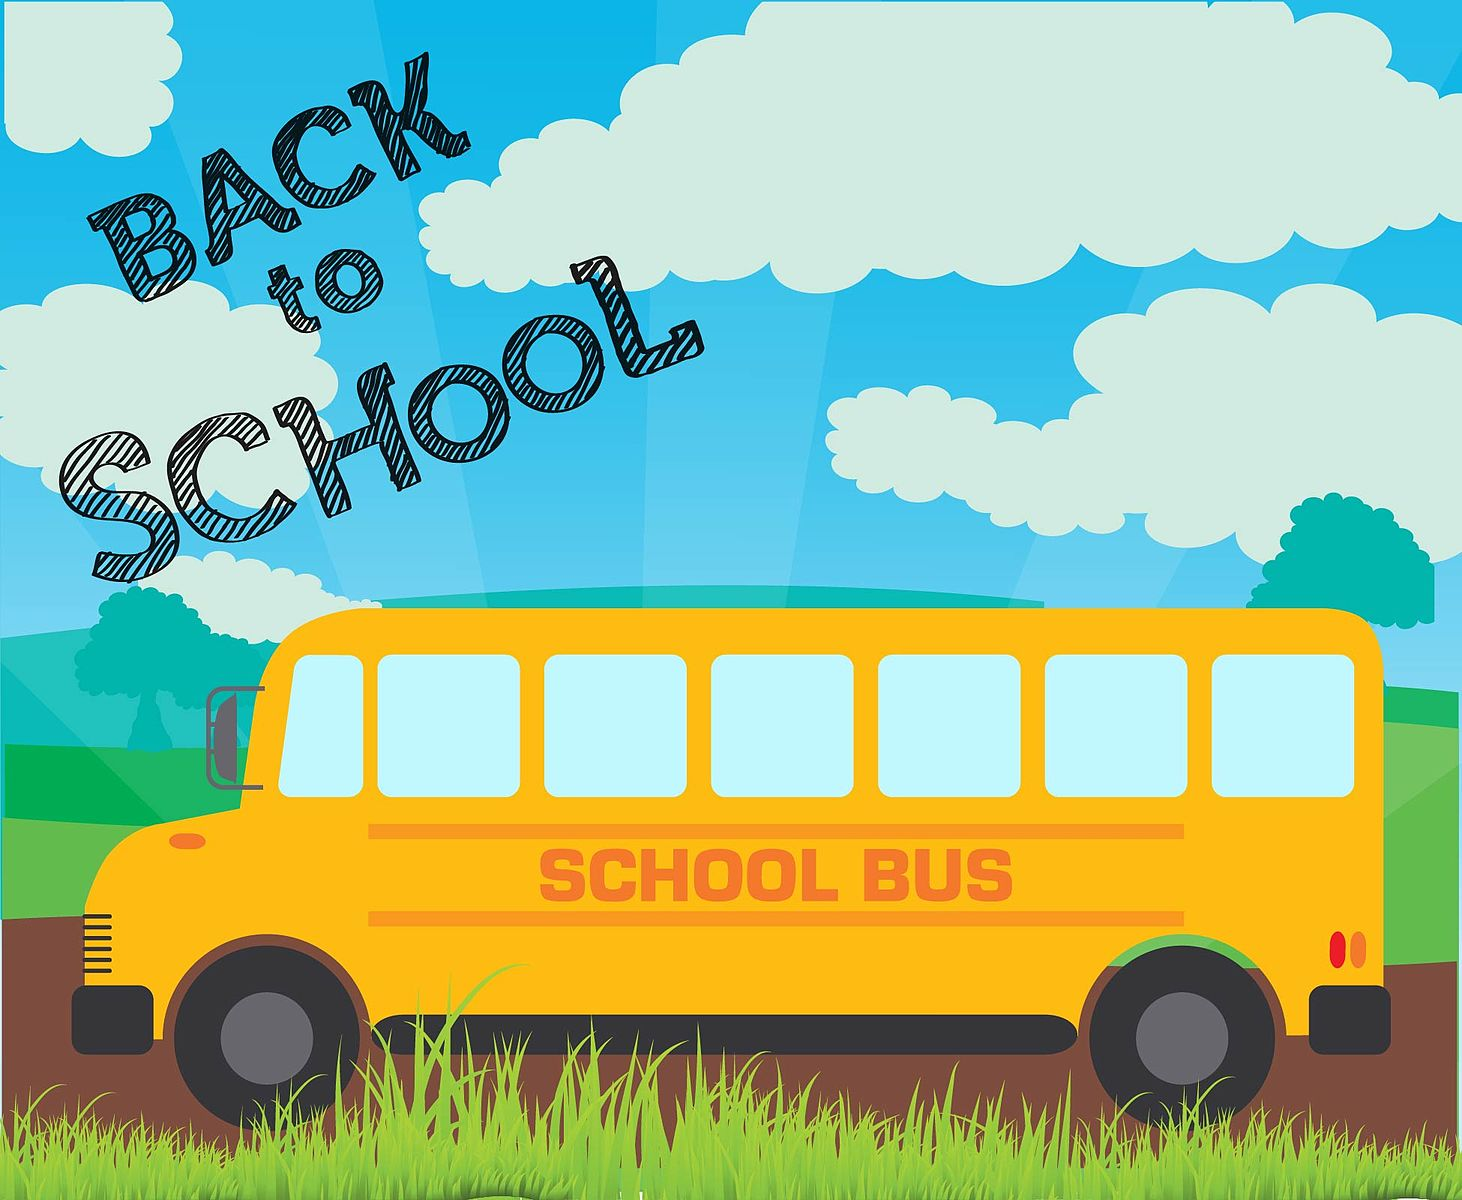 Back_to_school_bus_illustration.jpg